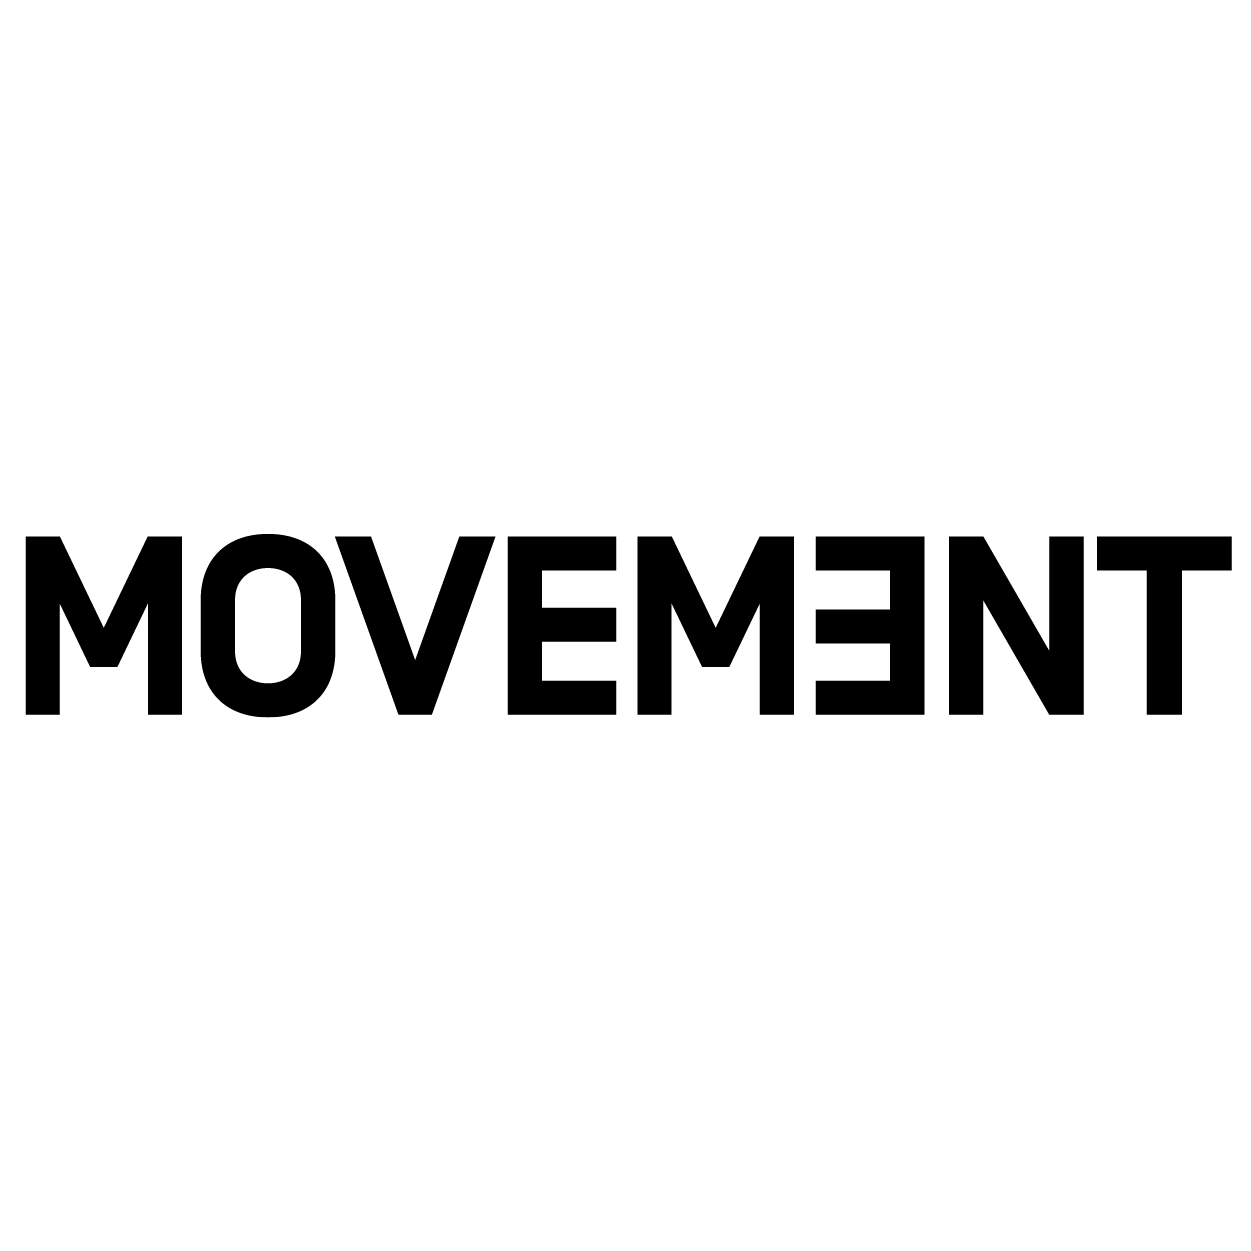 Mountain Spirit GmbH_Marken_movement